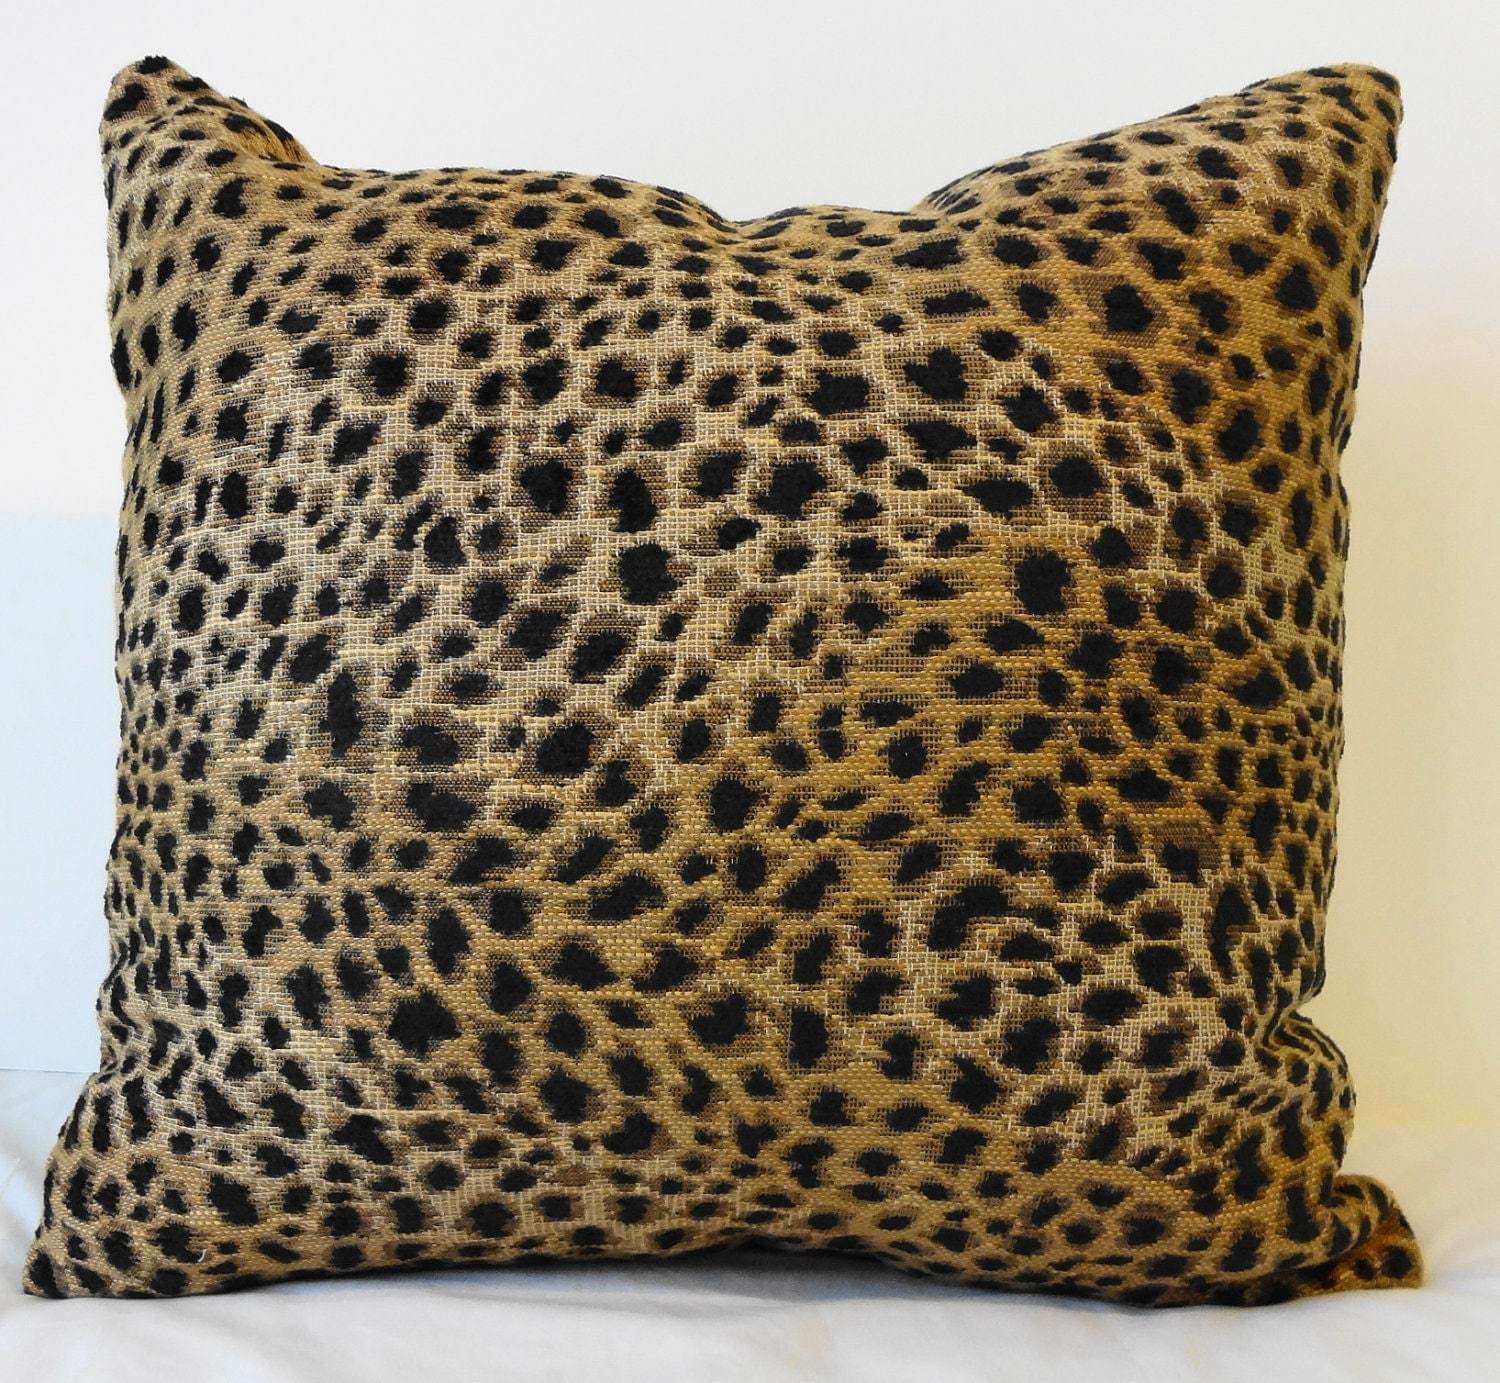 Leopard Print Decorative Pillow Cover Cheetah By Pillows4fun